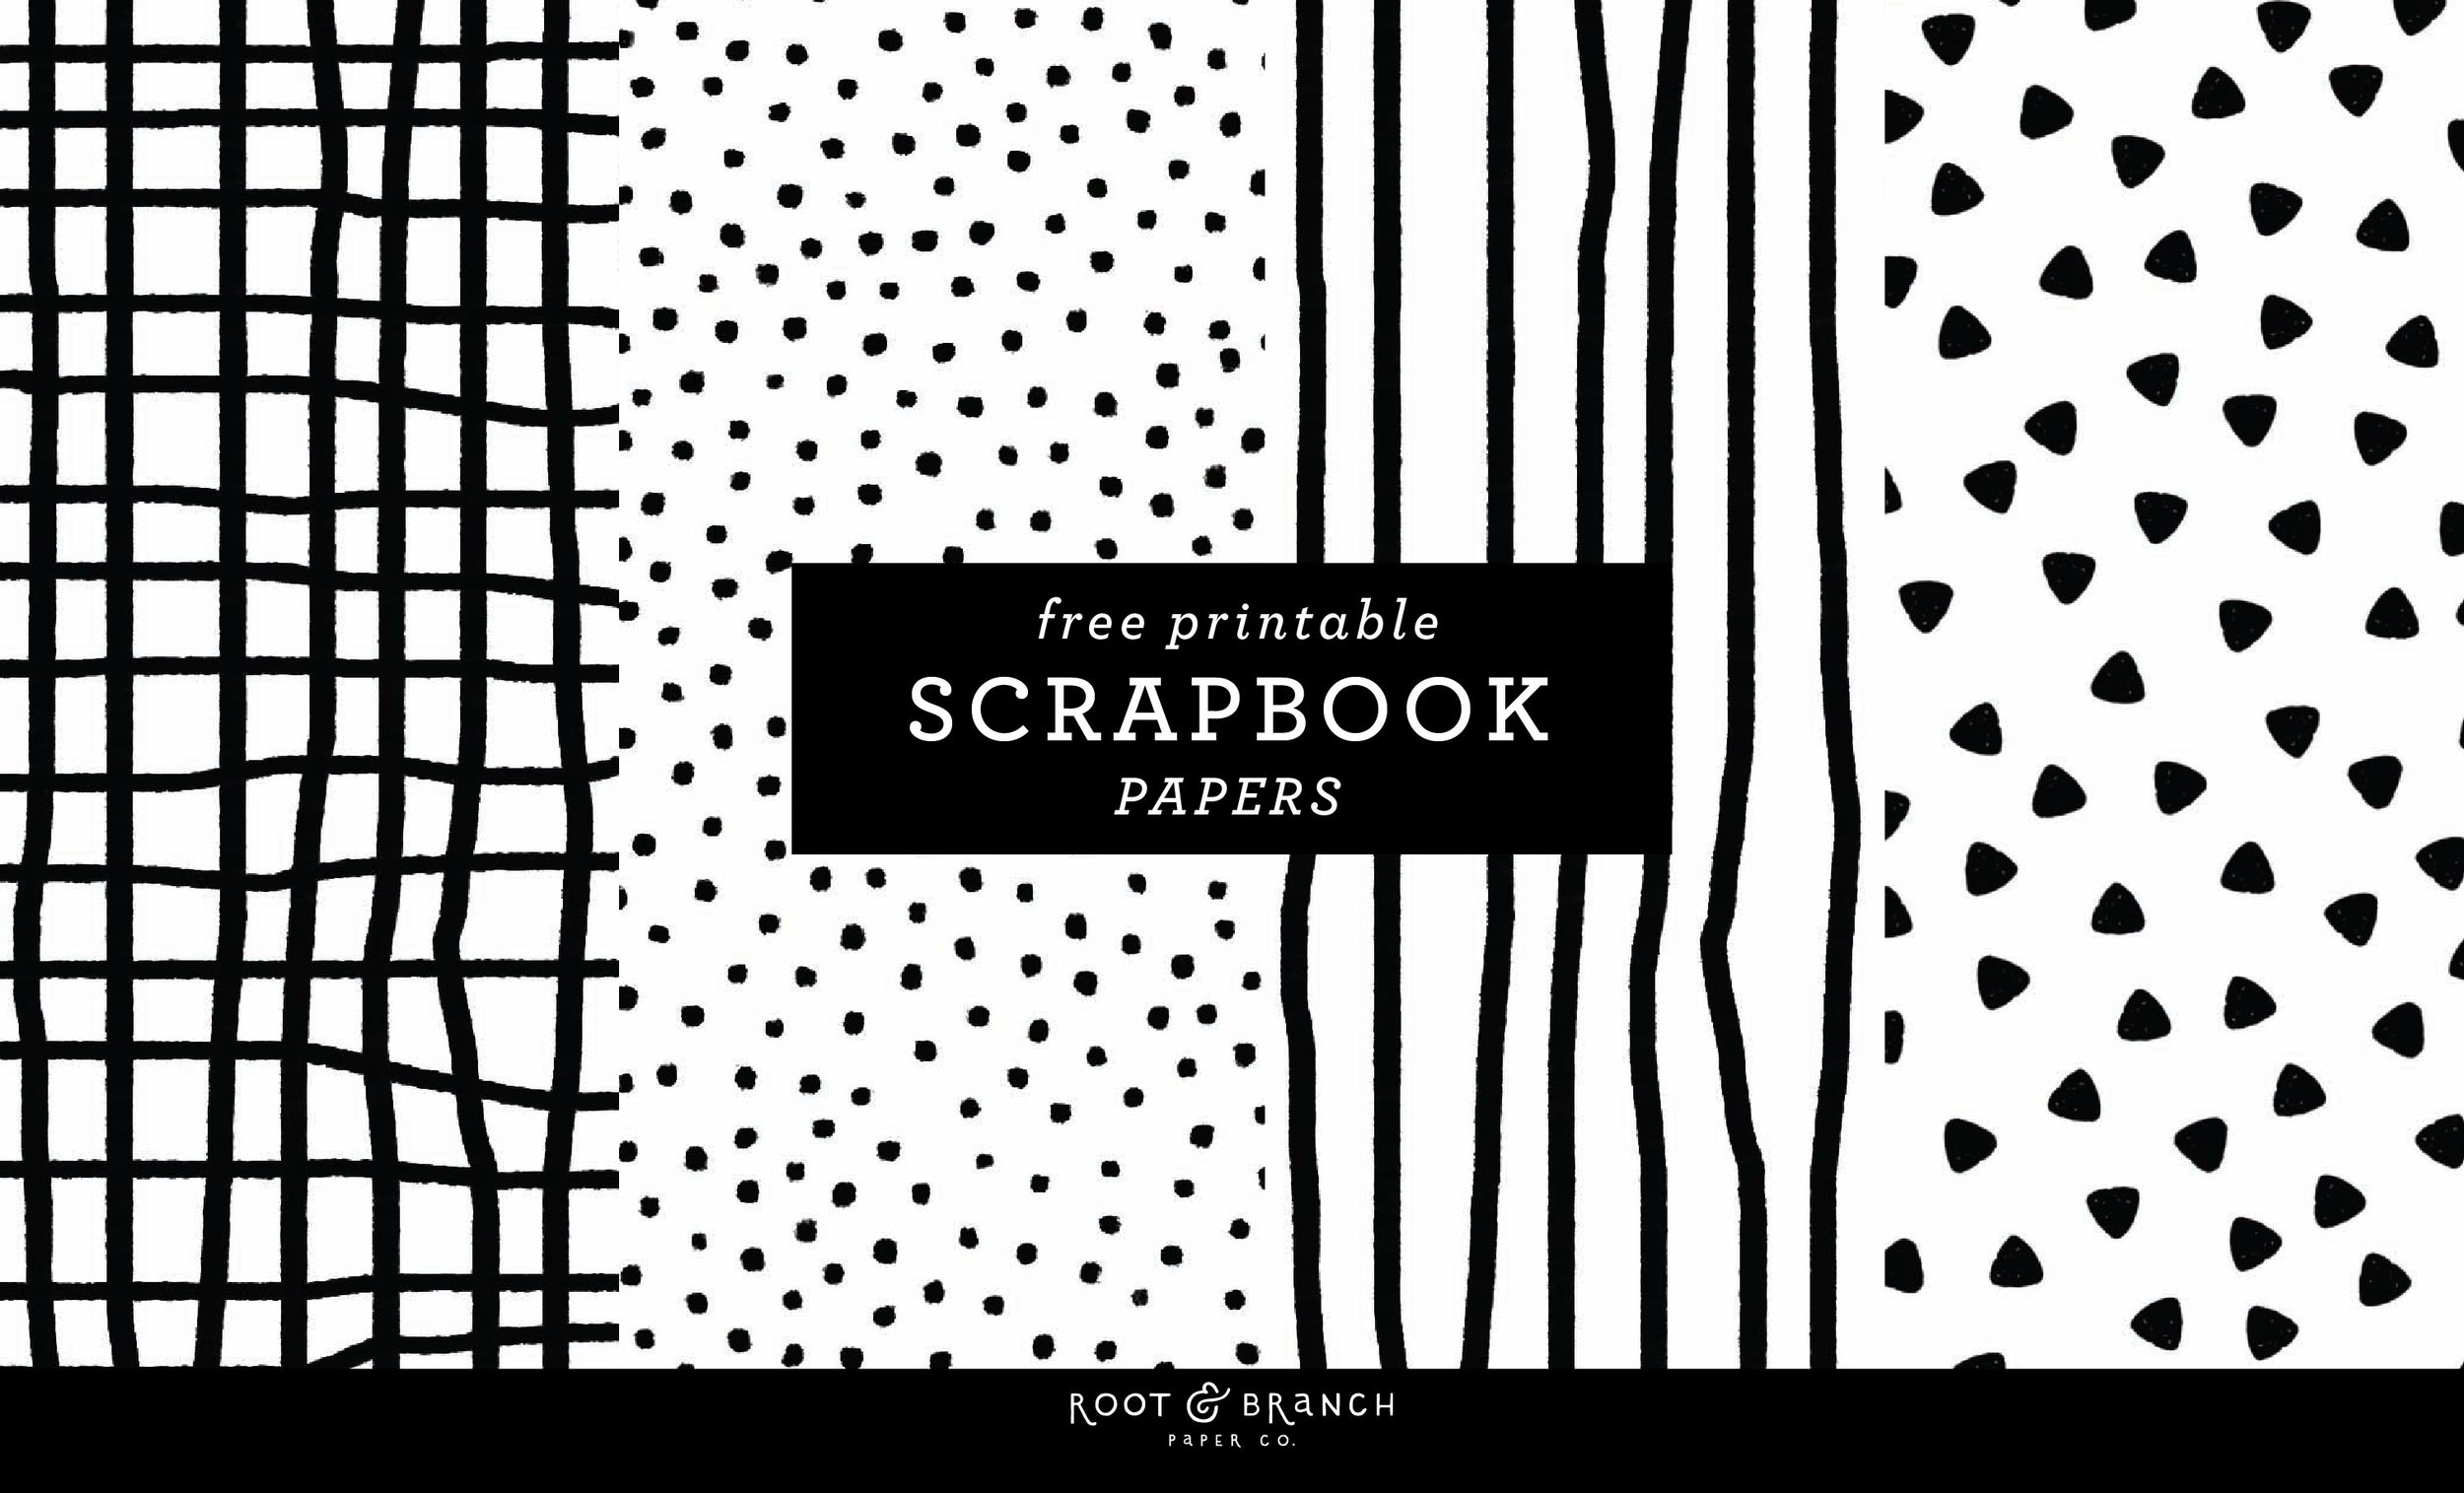 Scrapbook Paper-02.jpg- Free Printable Scrapbook Paper Black and White, Scrapbook Paper Printable PDF Free Download, Scrapbooking Freebies, Printable Scrapbook Paper Designs BW | From the Root & Branch Paper Co. Blog